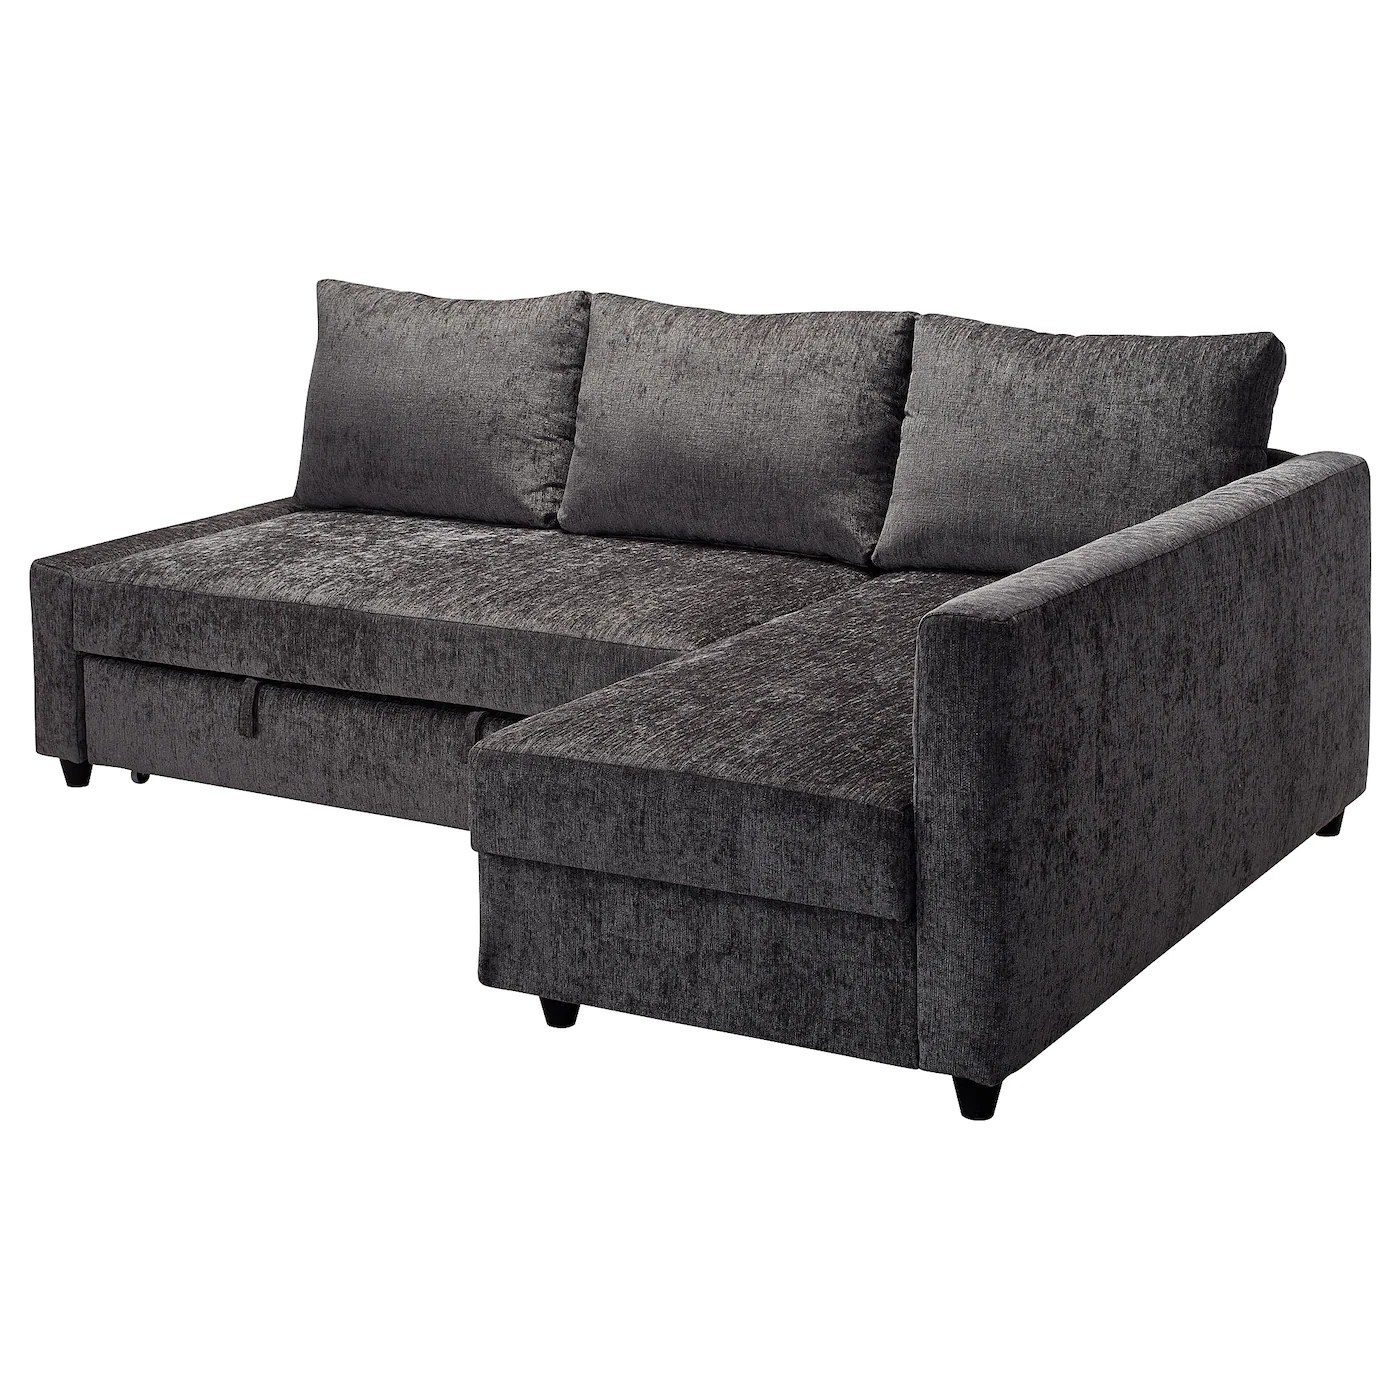 Ikea Sofa Bed Friheten Corner Sofa Bed With Storage Dark Grey